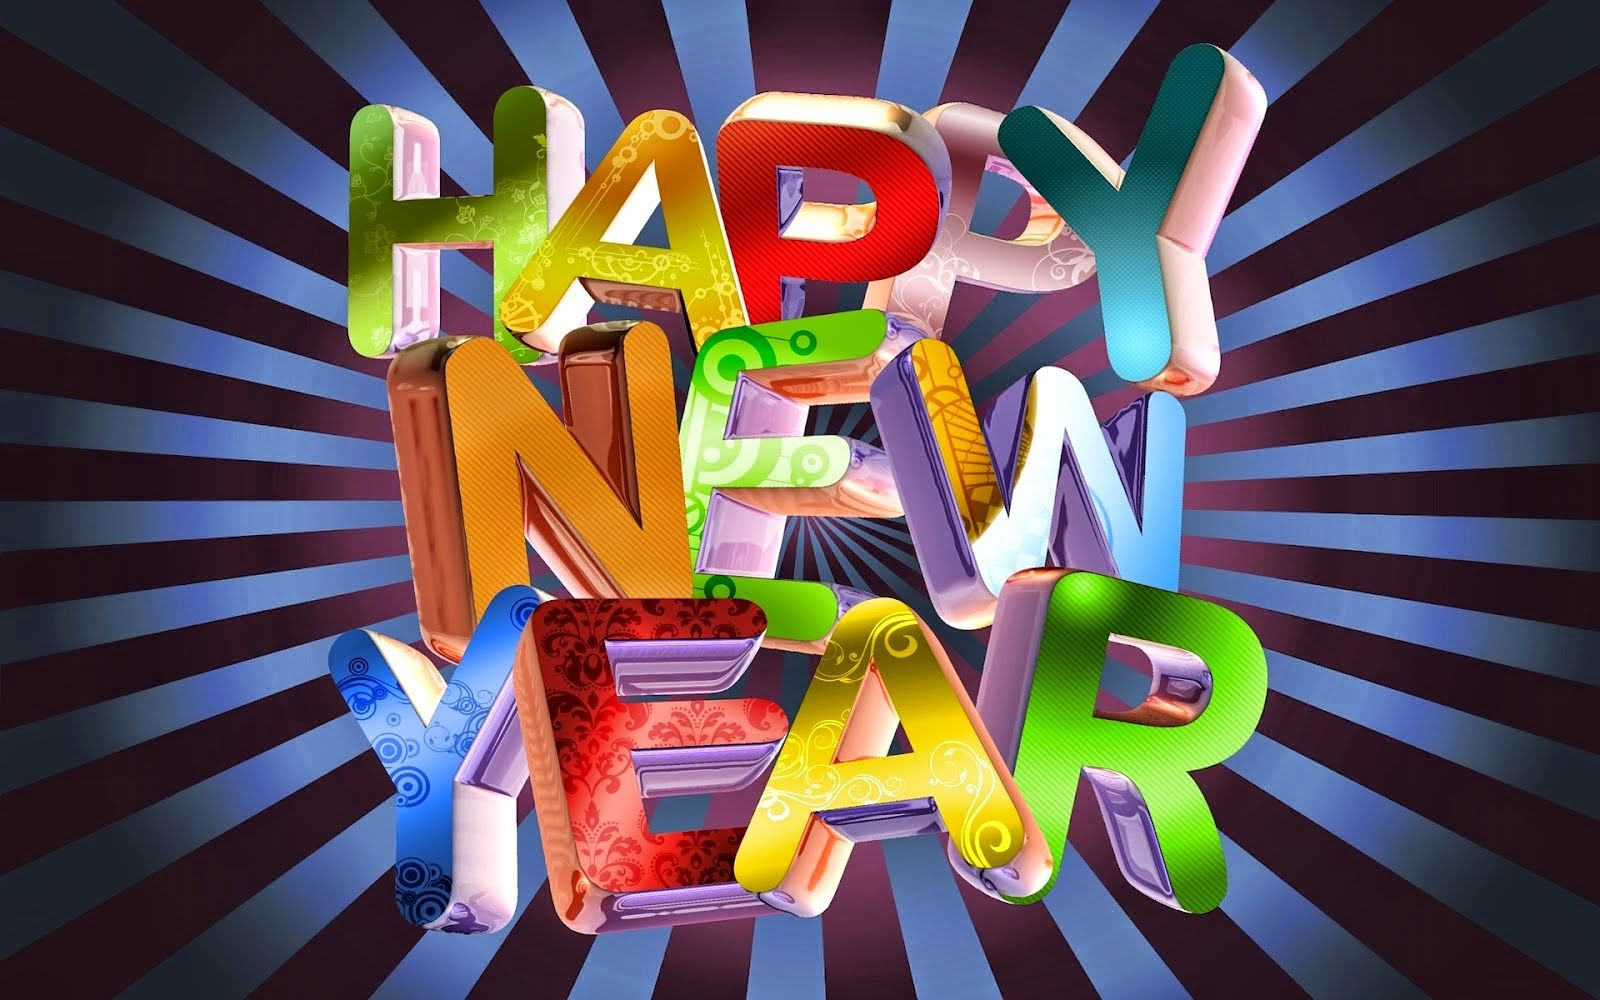 50 Happy New Year 2021 Background Images in HD Voeux